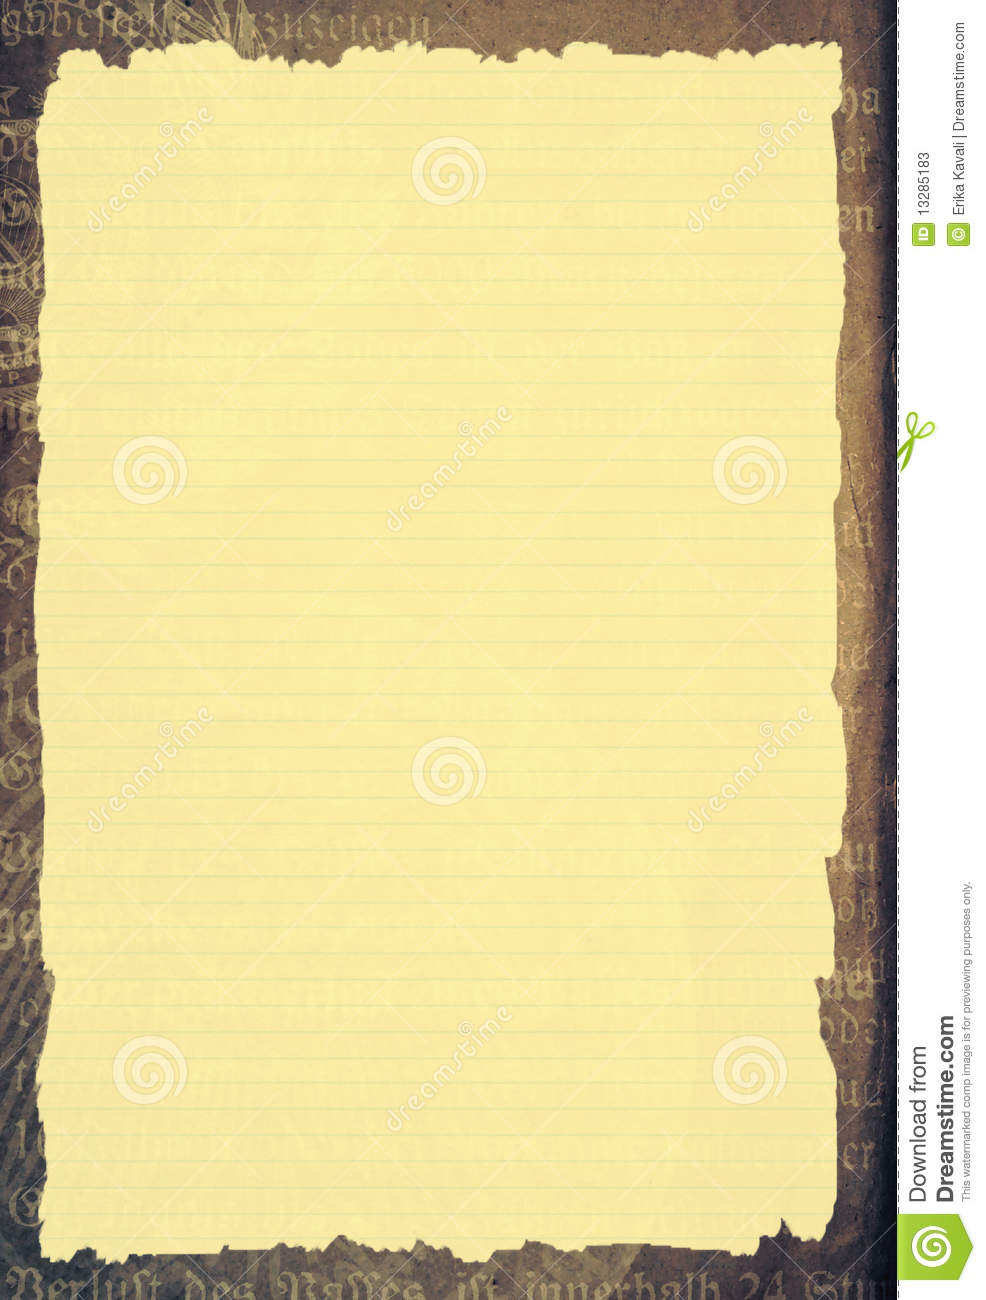 Old Paper Template Stock Photos - Image: 13285183